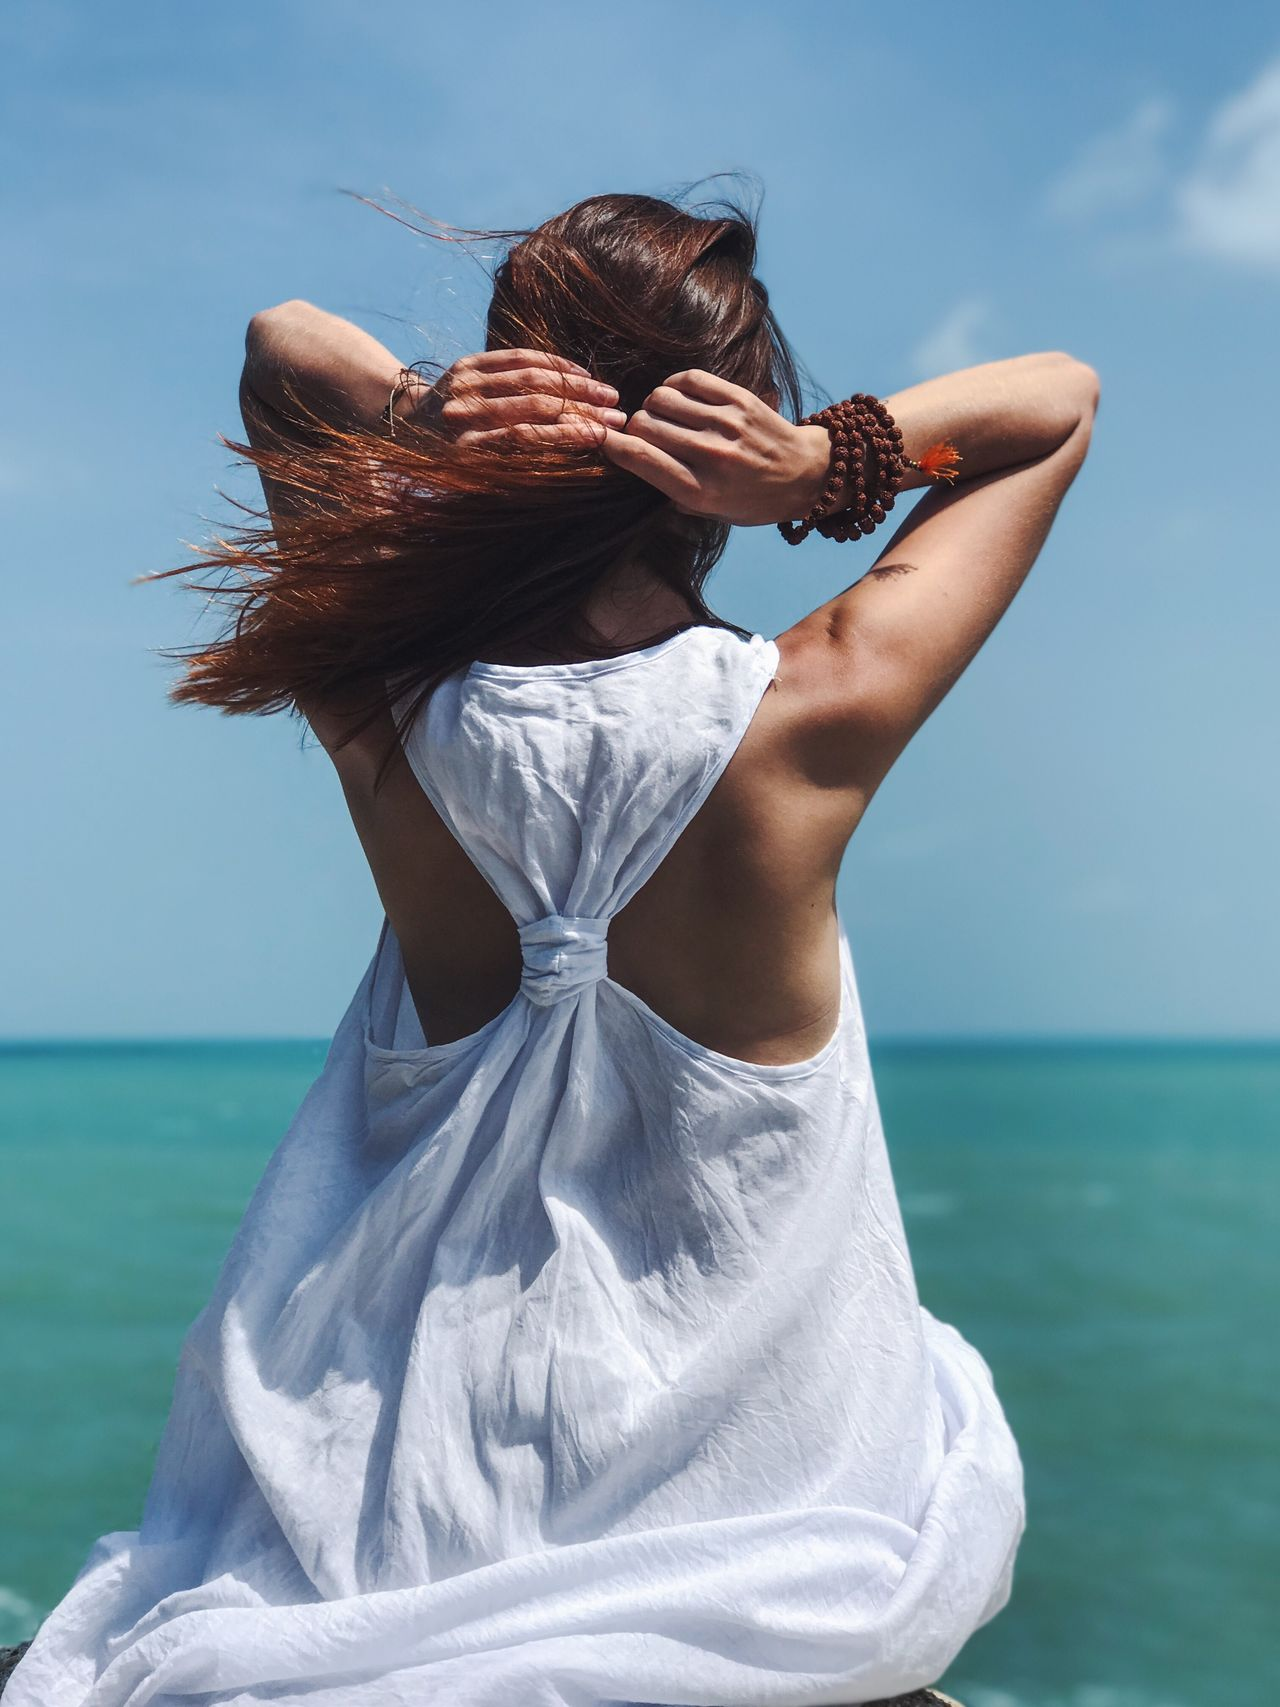 Sea Real People Horizon Over Water Water Rear View One Person Sky Leisure Activity Outdoors Lifestyles Beach Nature Day Women Long Hair Sitting Rock - Object Blue Beauty In Nature Scenics Young Women The Portraitist - 2017 EyeEm Awards White Dress Human Back Bracelet